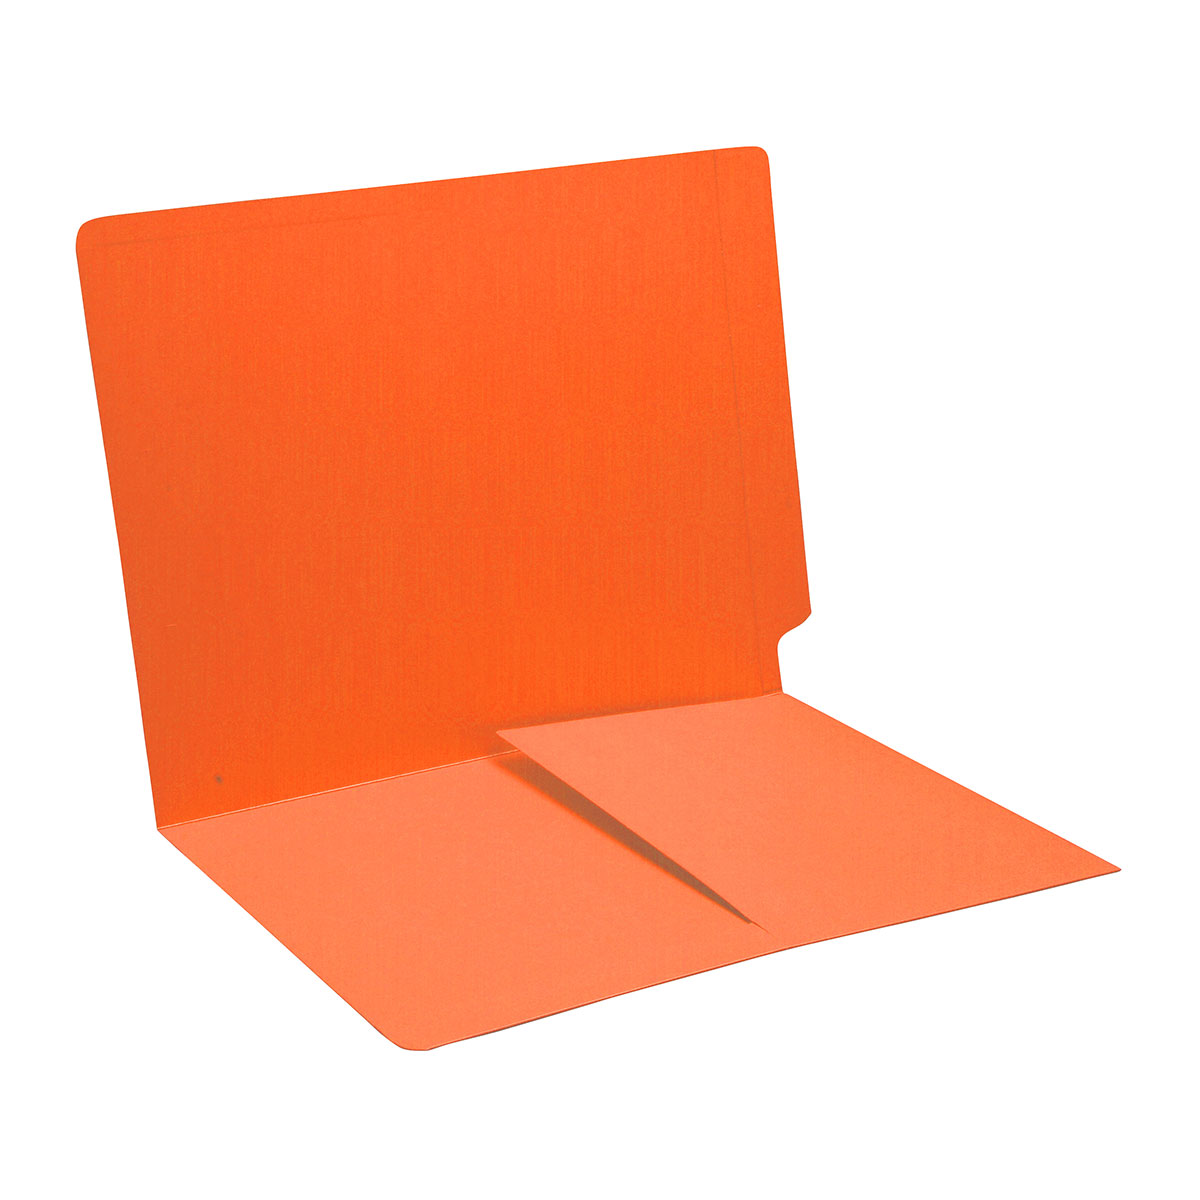 S-9011-ORG - 14 pt Orange Folders, Full Cut End Tab, Letter Size, 1/2 Pocket Inside Front (Box of 50)